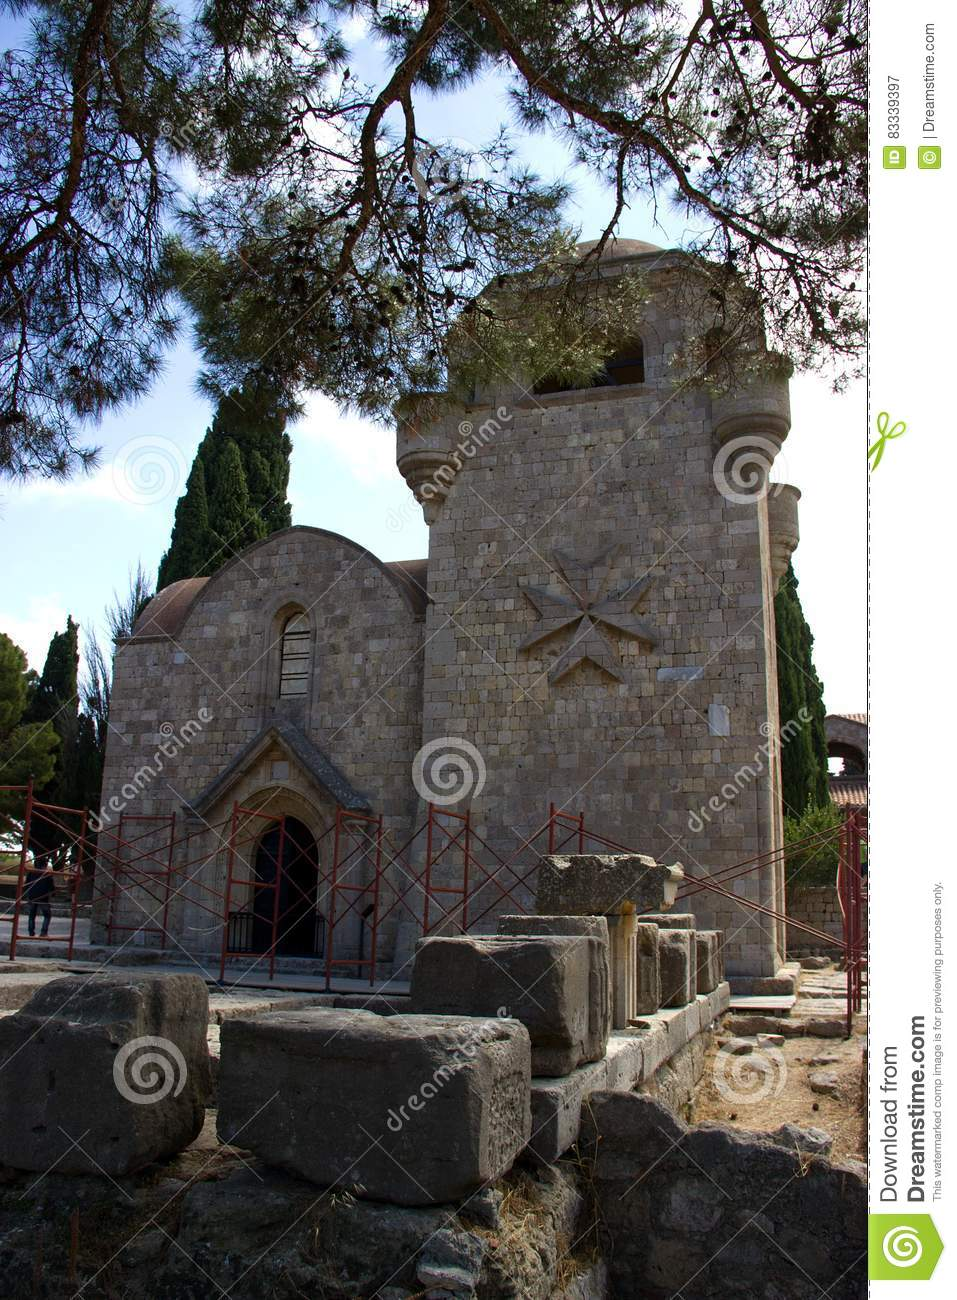 Monastry of filerimos Rhodos Greece